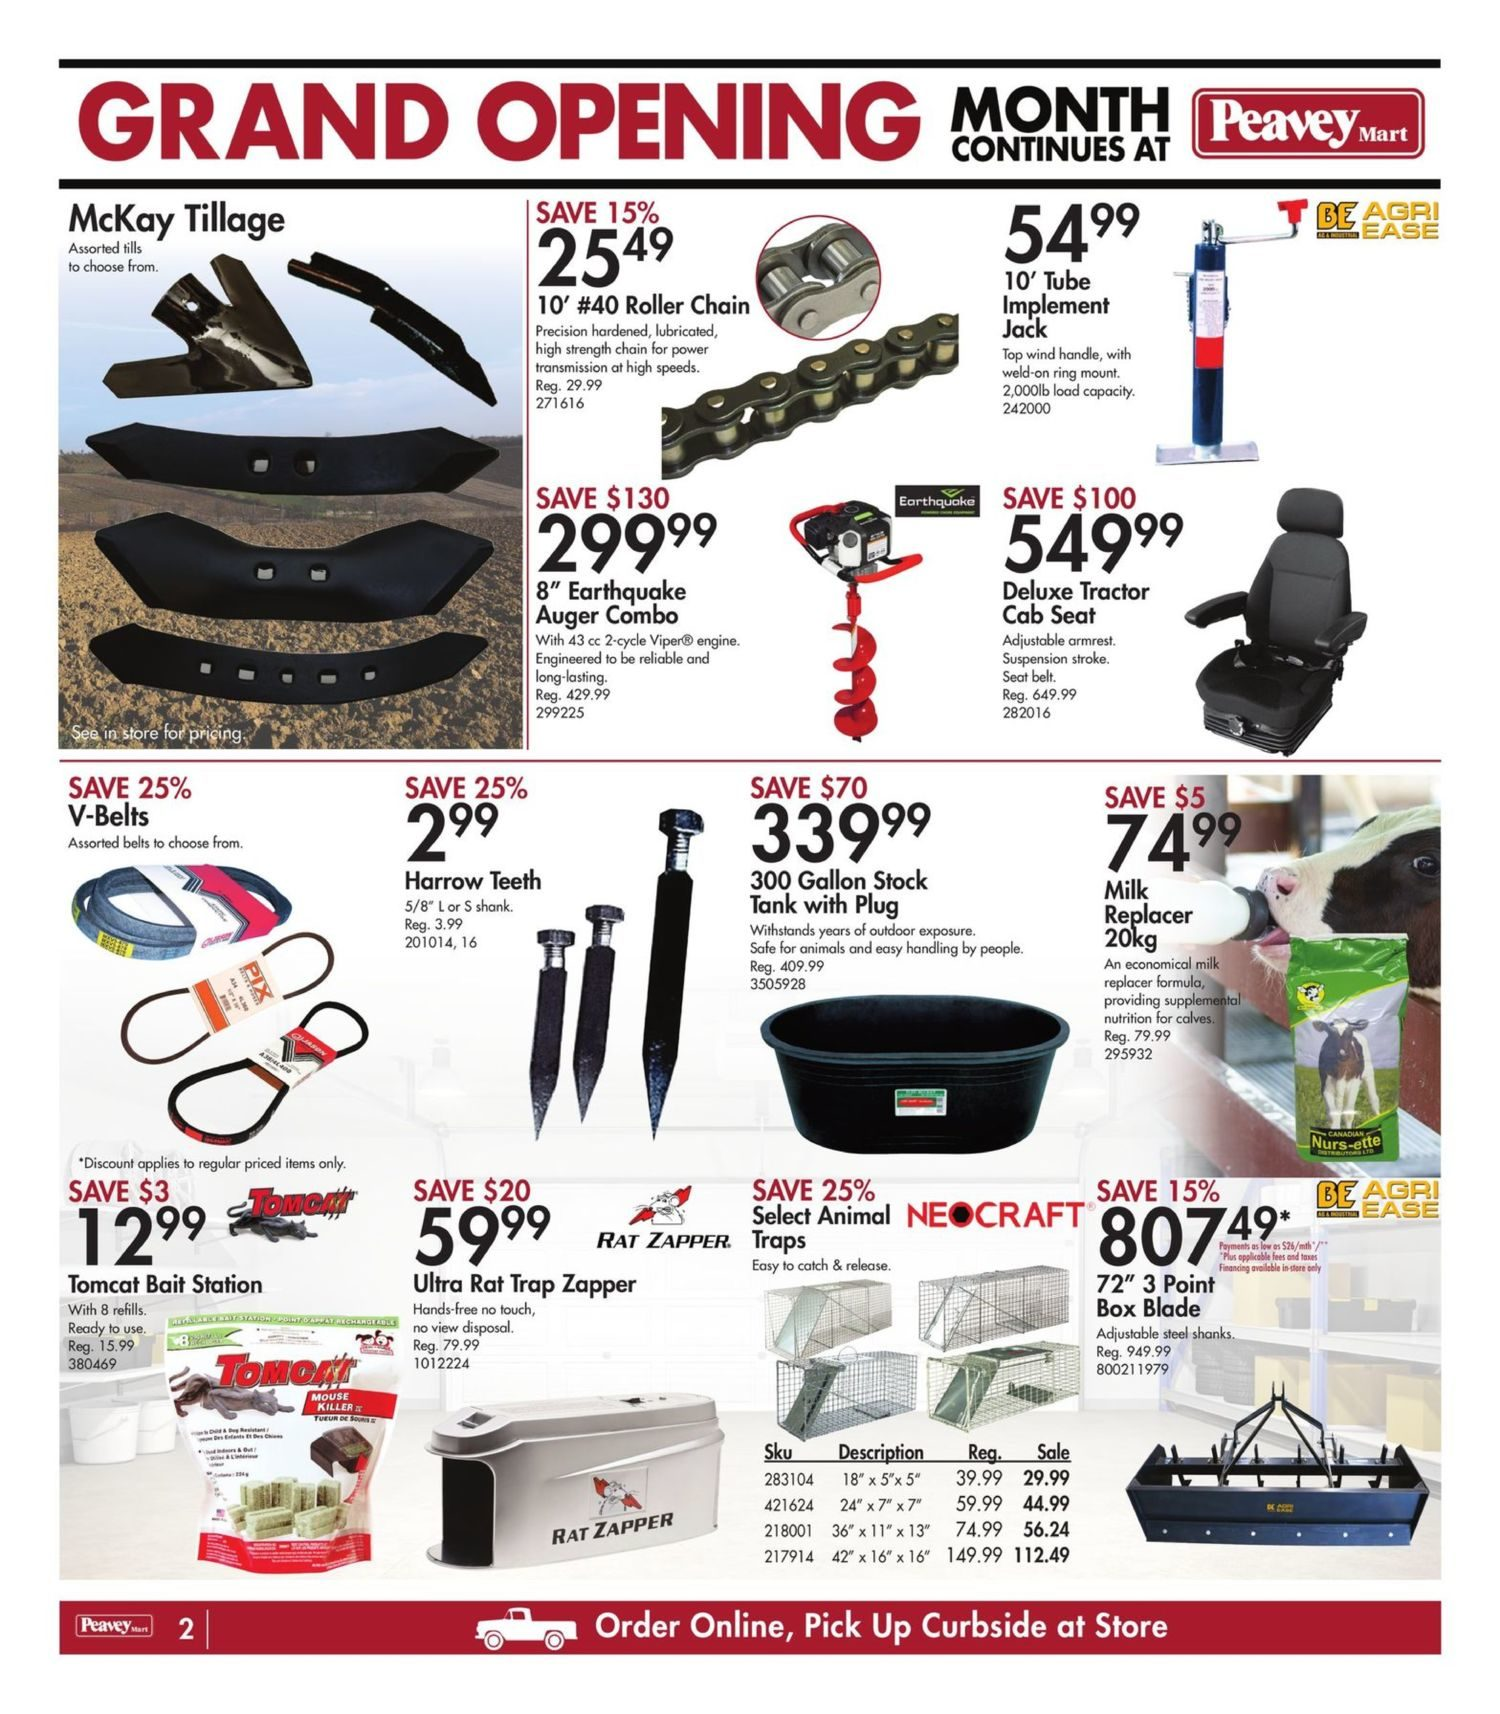 Peavey Mart - Weekly Flyer Specials - National Grand Opening Celebration - Page 3